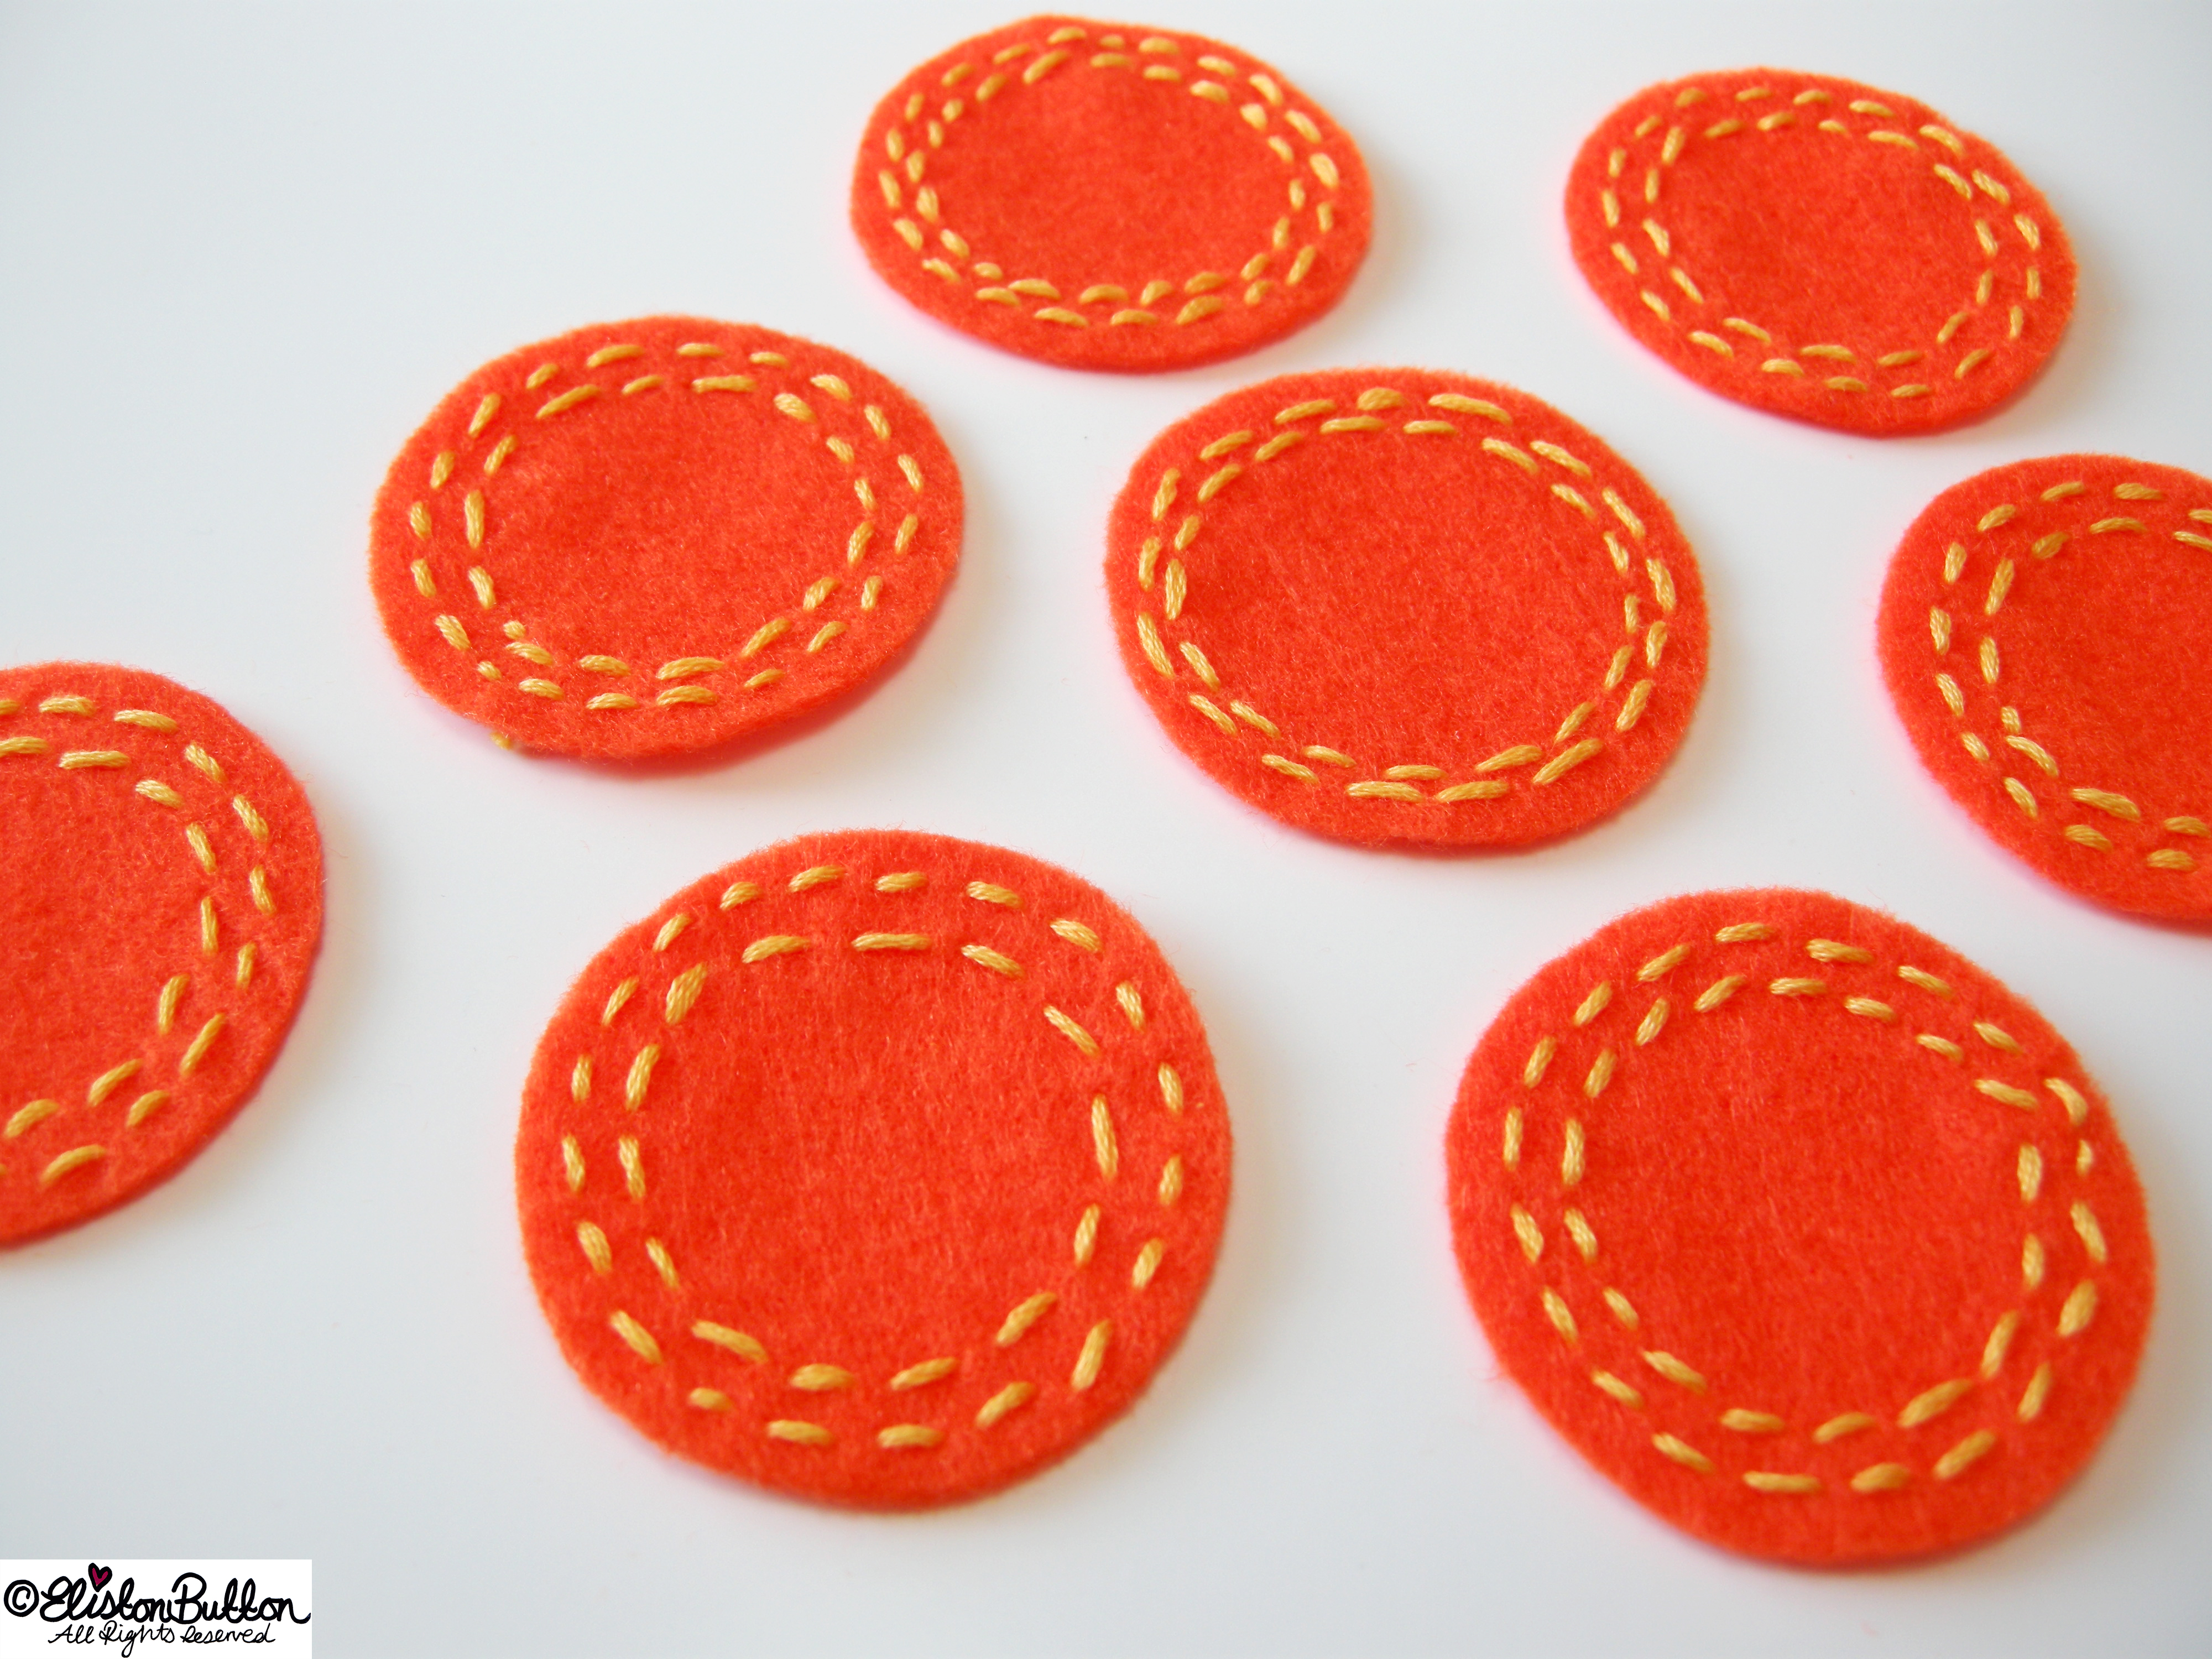 Ornage Felt Circles with Yellow Running Stitch Embroidery - 27 Before 27 - Oranges and Lemons at www.elistonbutton.com - Eliston Button - That Crafty Kid – Art, Design, Craft & Adventure.